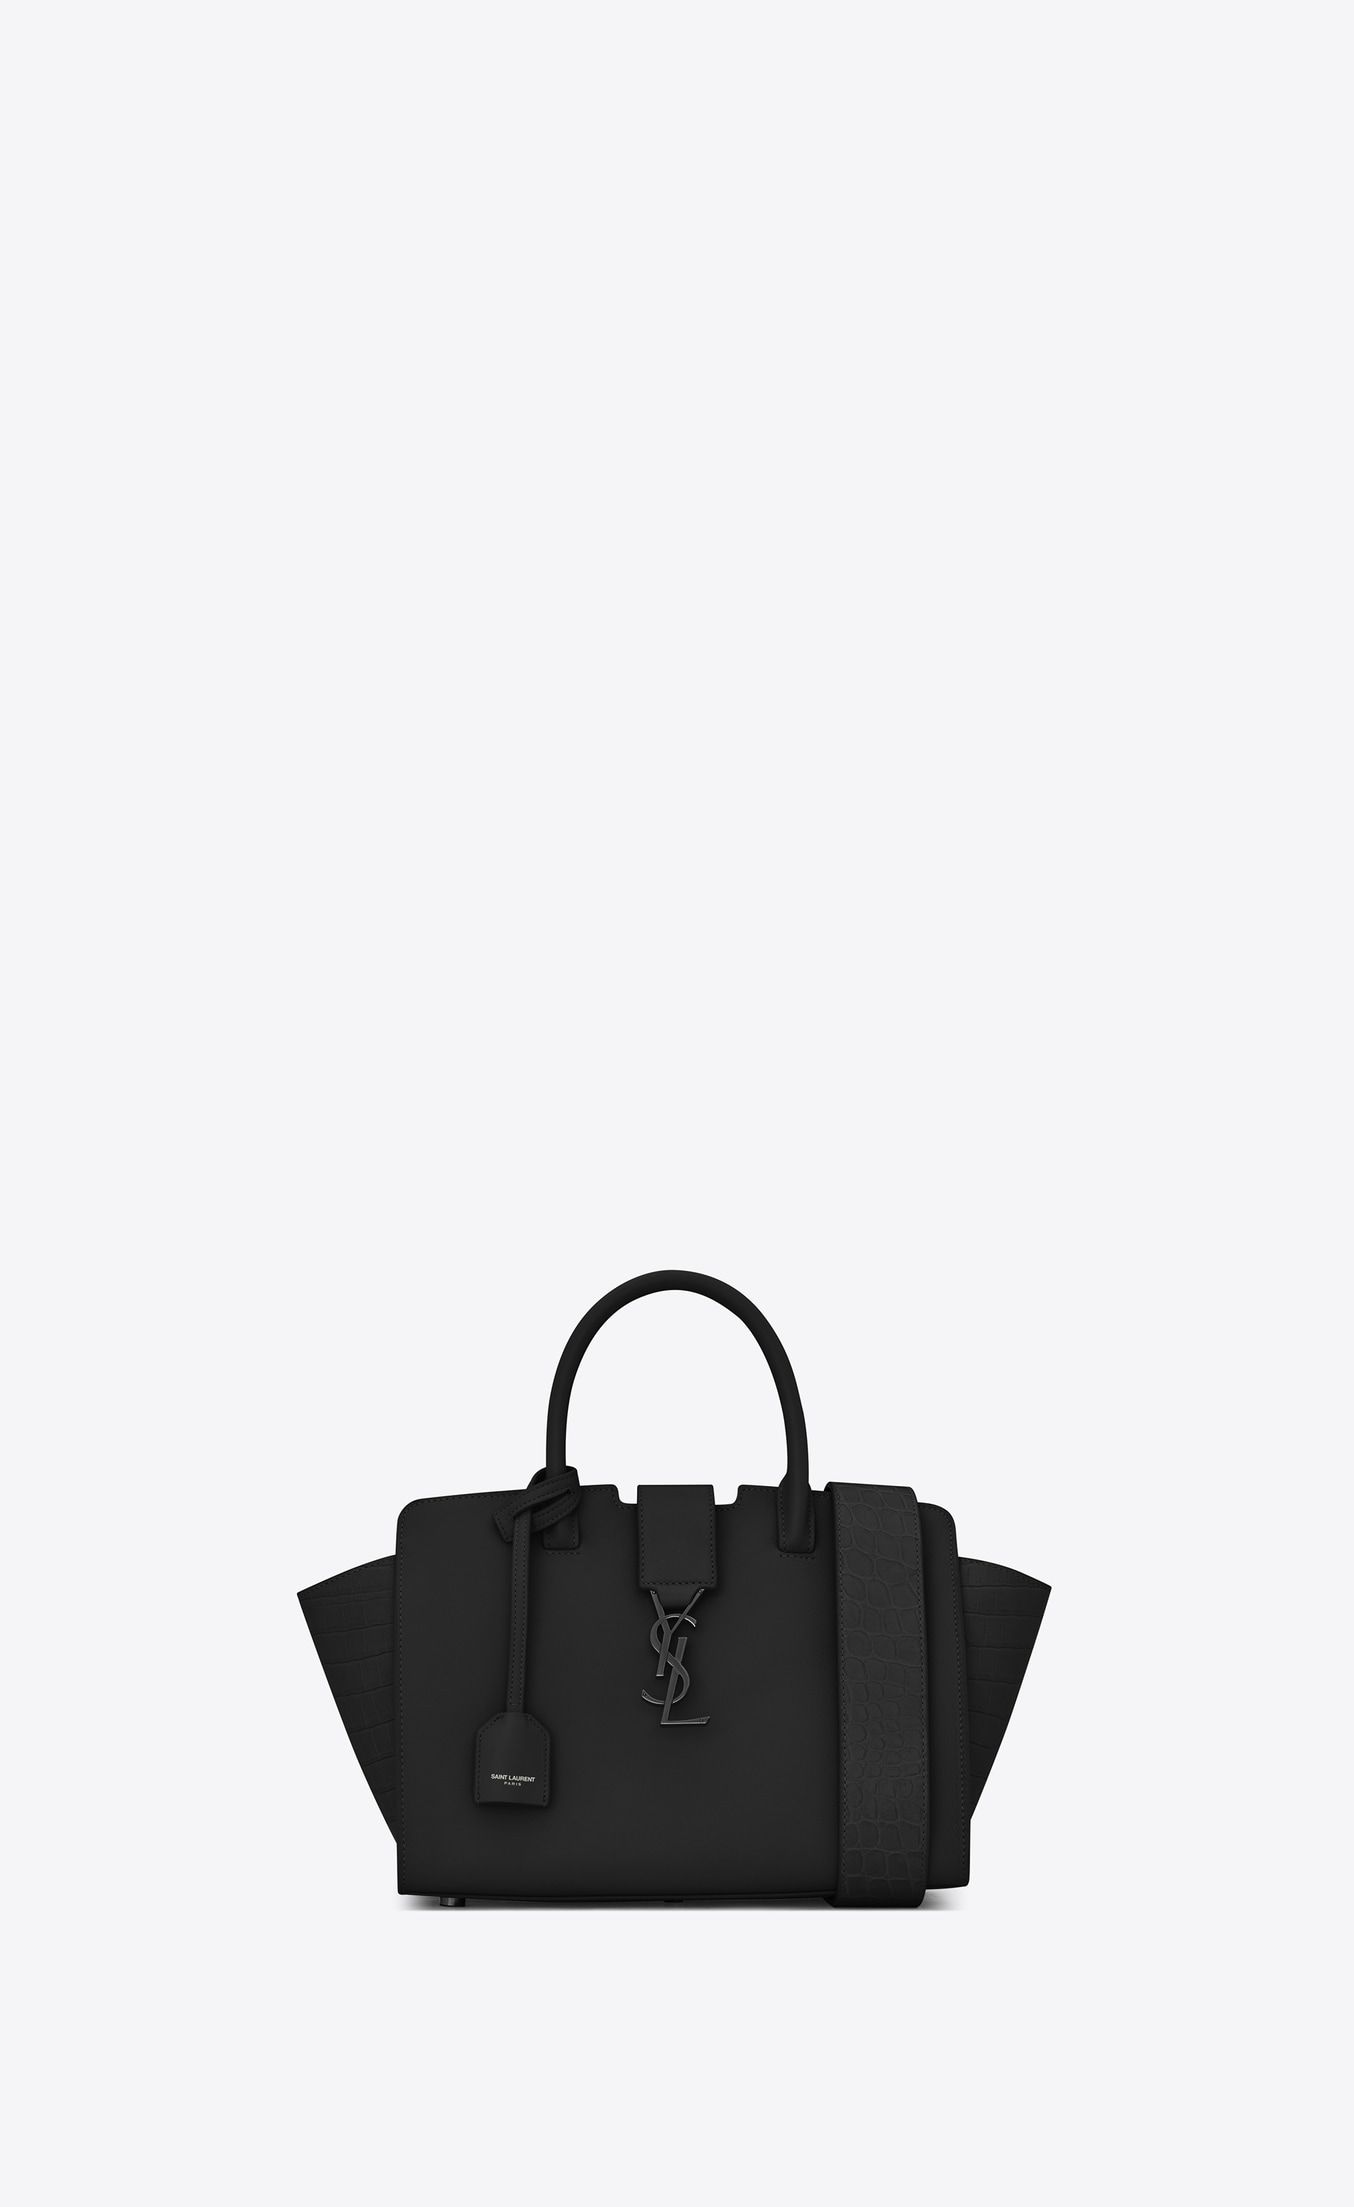 5cbfbcfa3 Saint Laurent Baby Downtown Cabas Ysl Bag In Black Leather And Crocodile  Embossed Leather | YSL.com